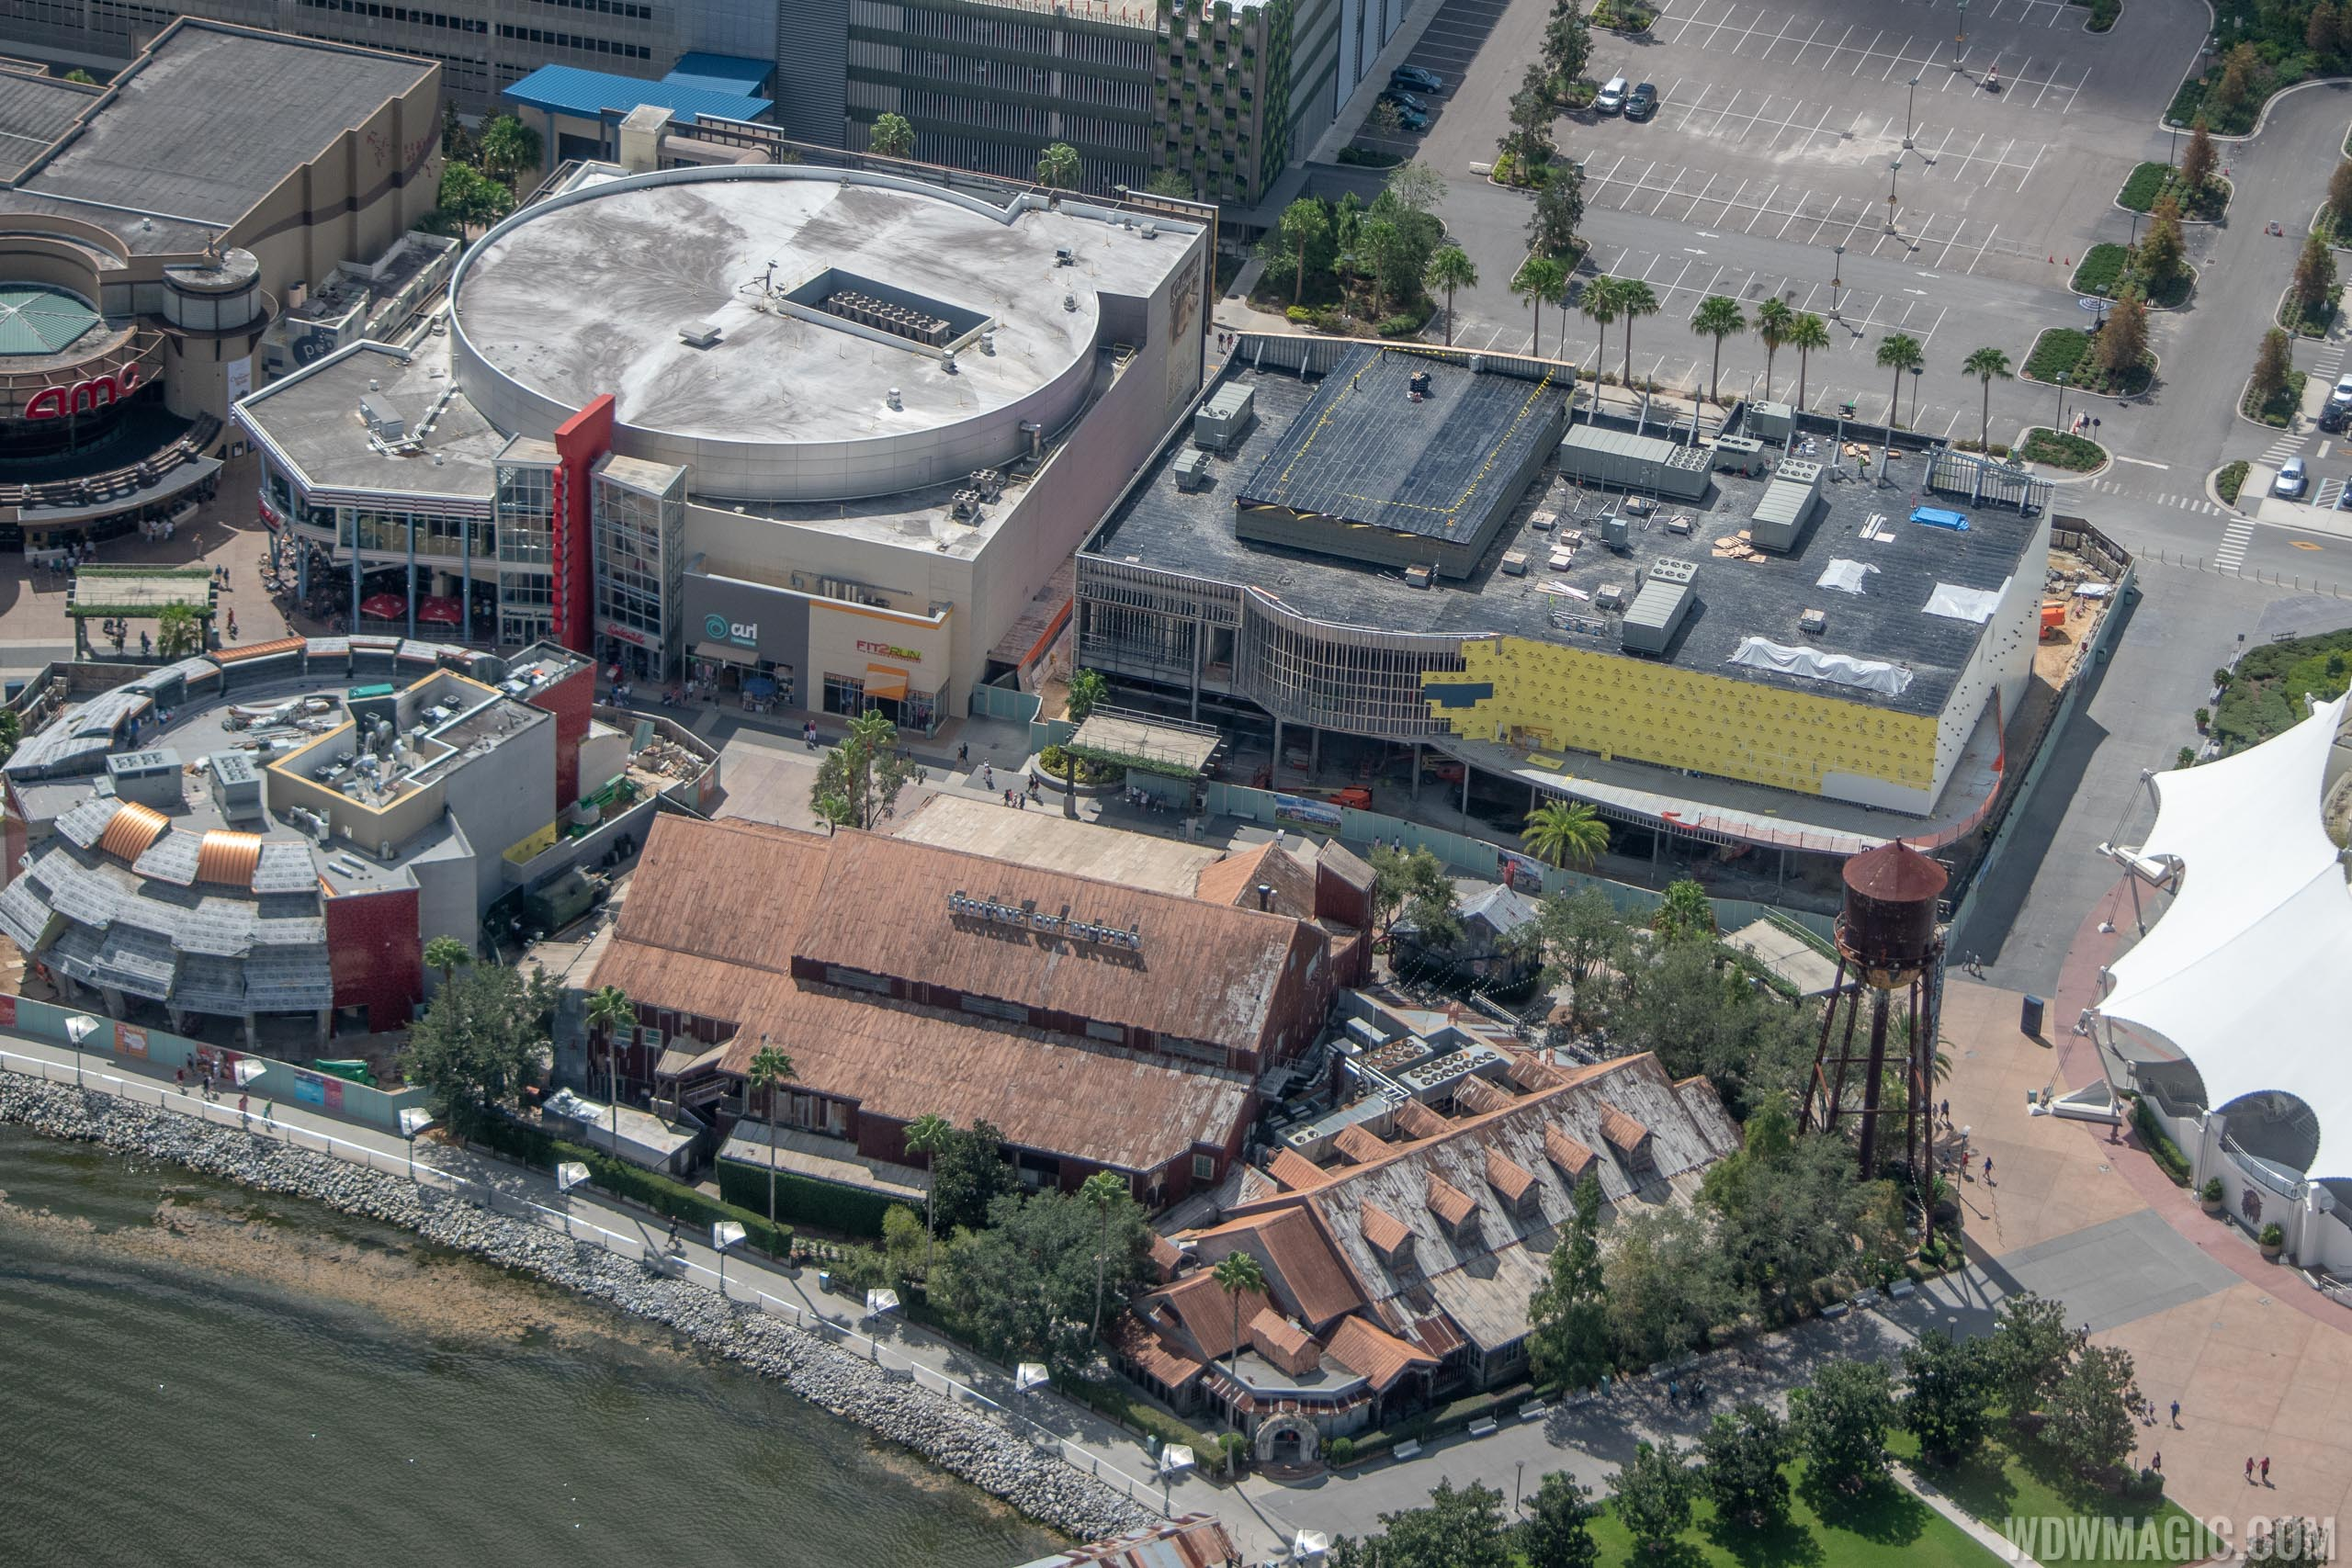 The NBA Experience construction aerial pictures - September 2018